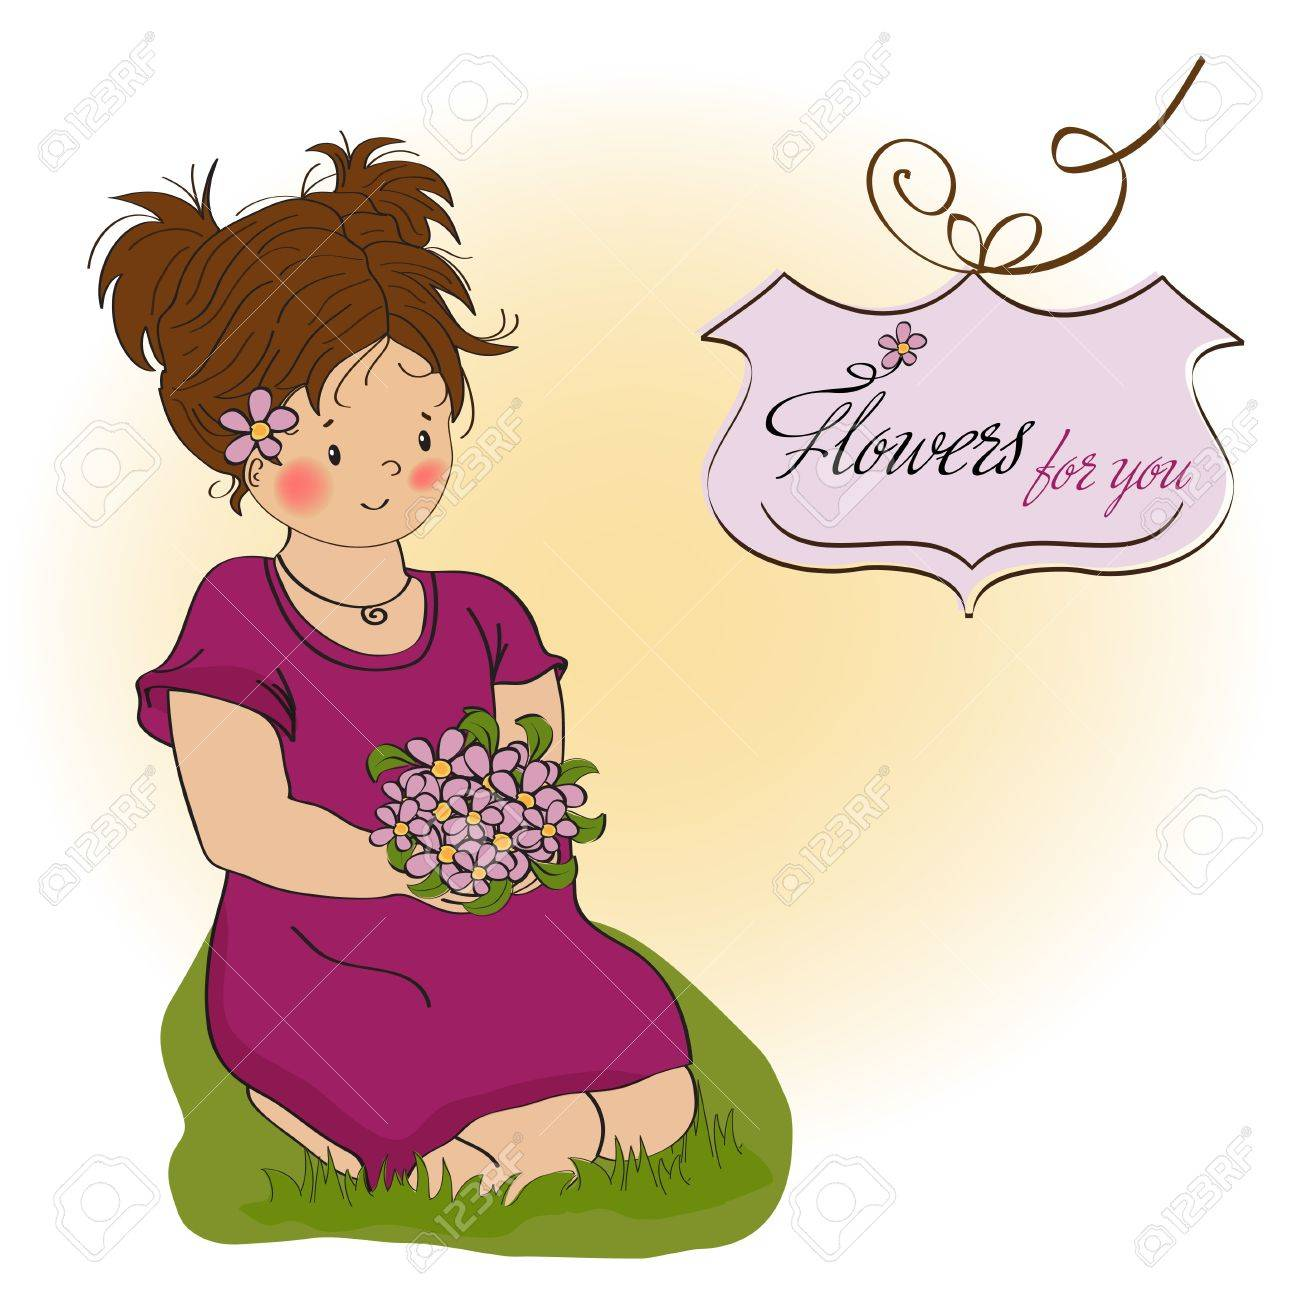 young girl with a bouquet of flowers birthday greeting card Stock Vector - 12704263